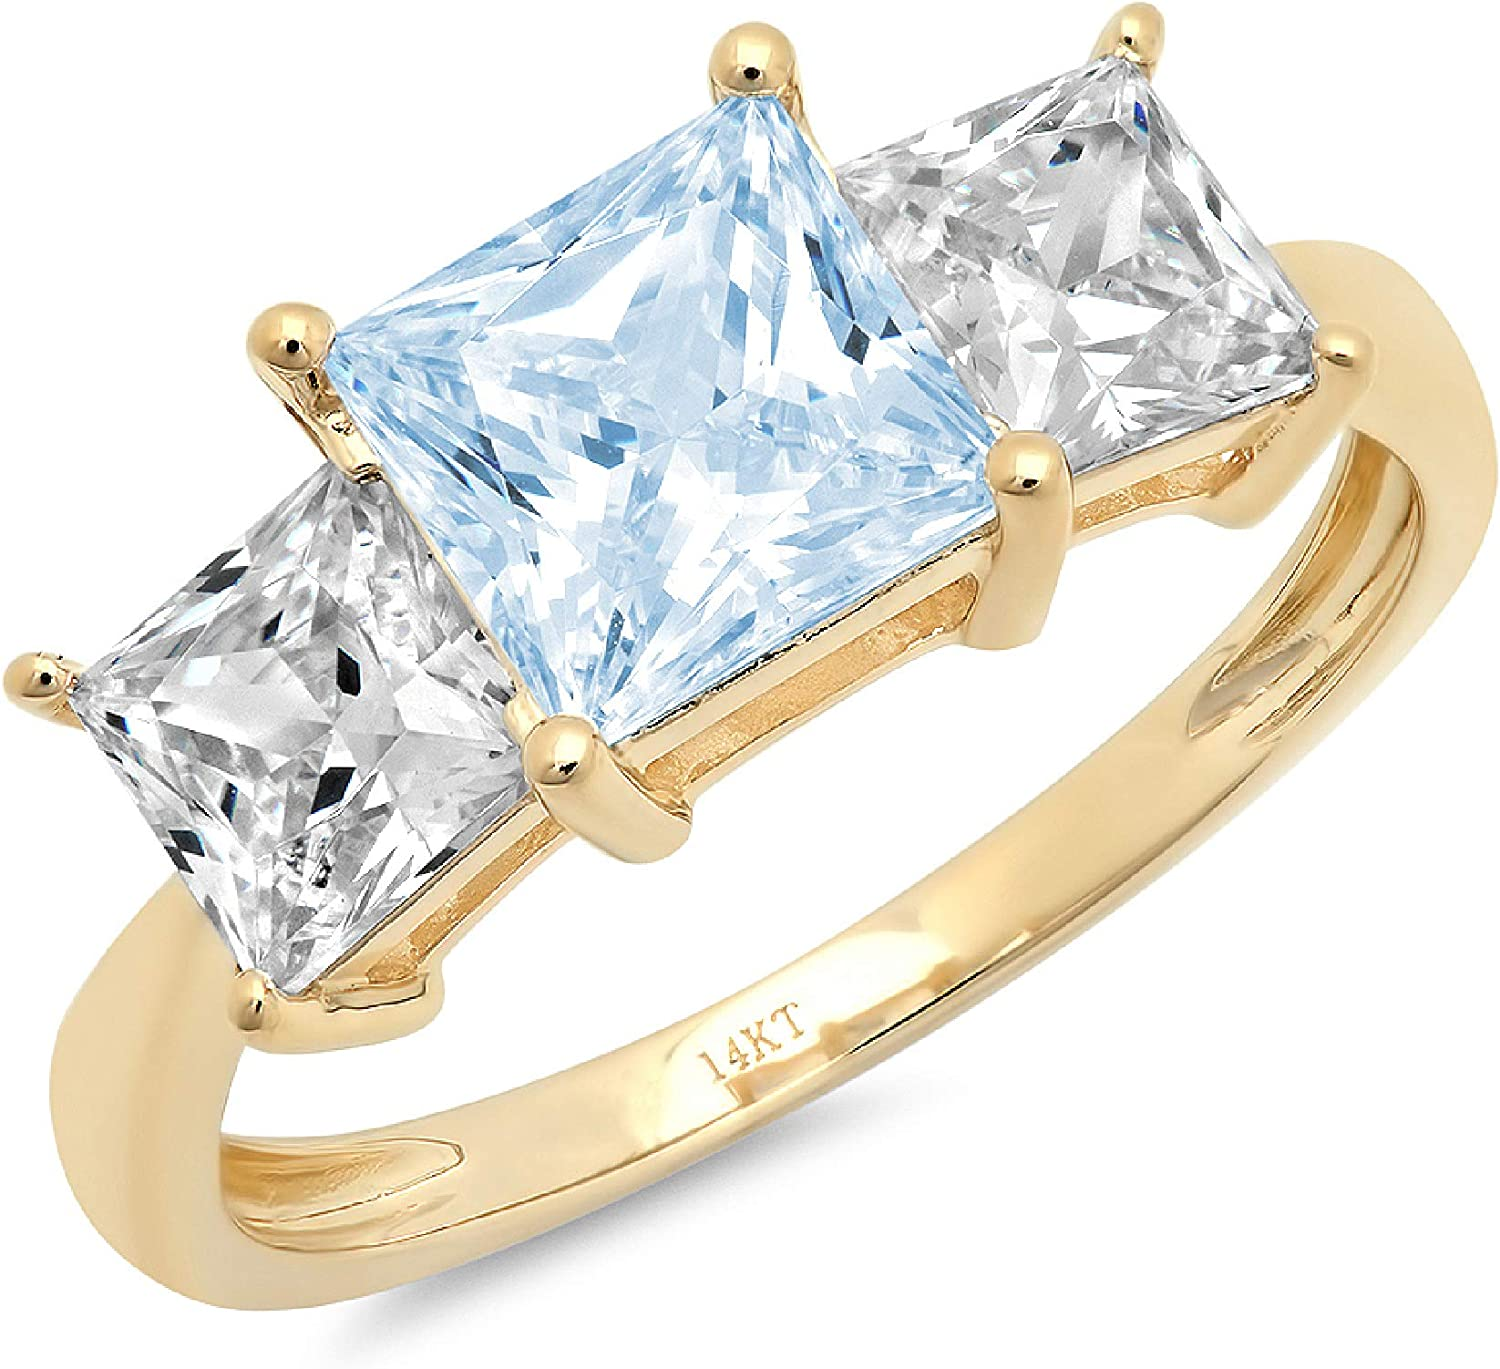 3.0ct Brilliant Princess Cut 3 Stone Solitaire with Accent Natural Topaz Gem Stone Ideal VVS1 Engagement Promise Anniversary Bridal Wedding Ring 14k Yellow Gold